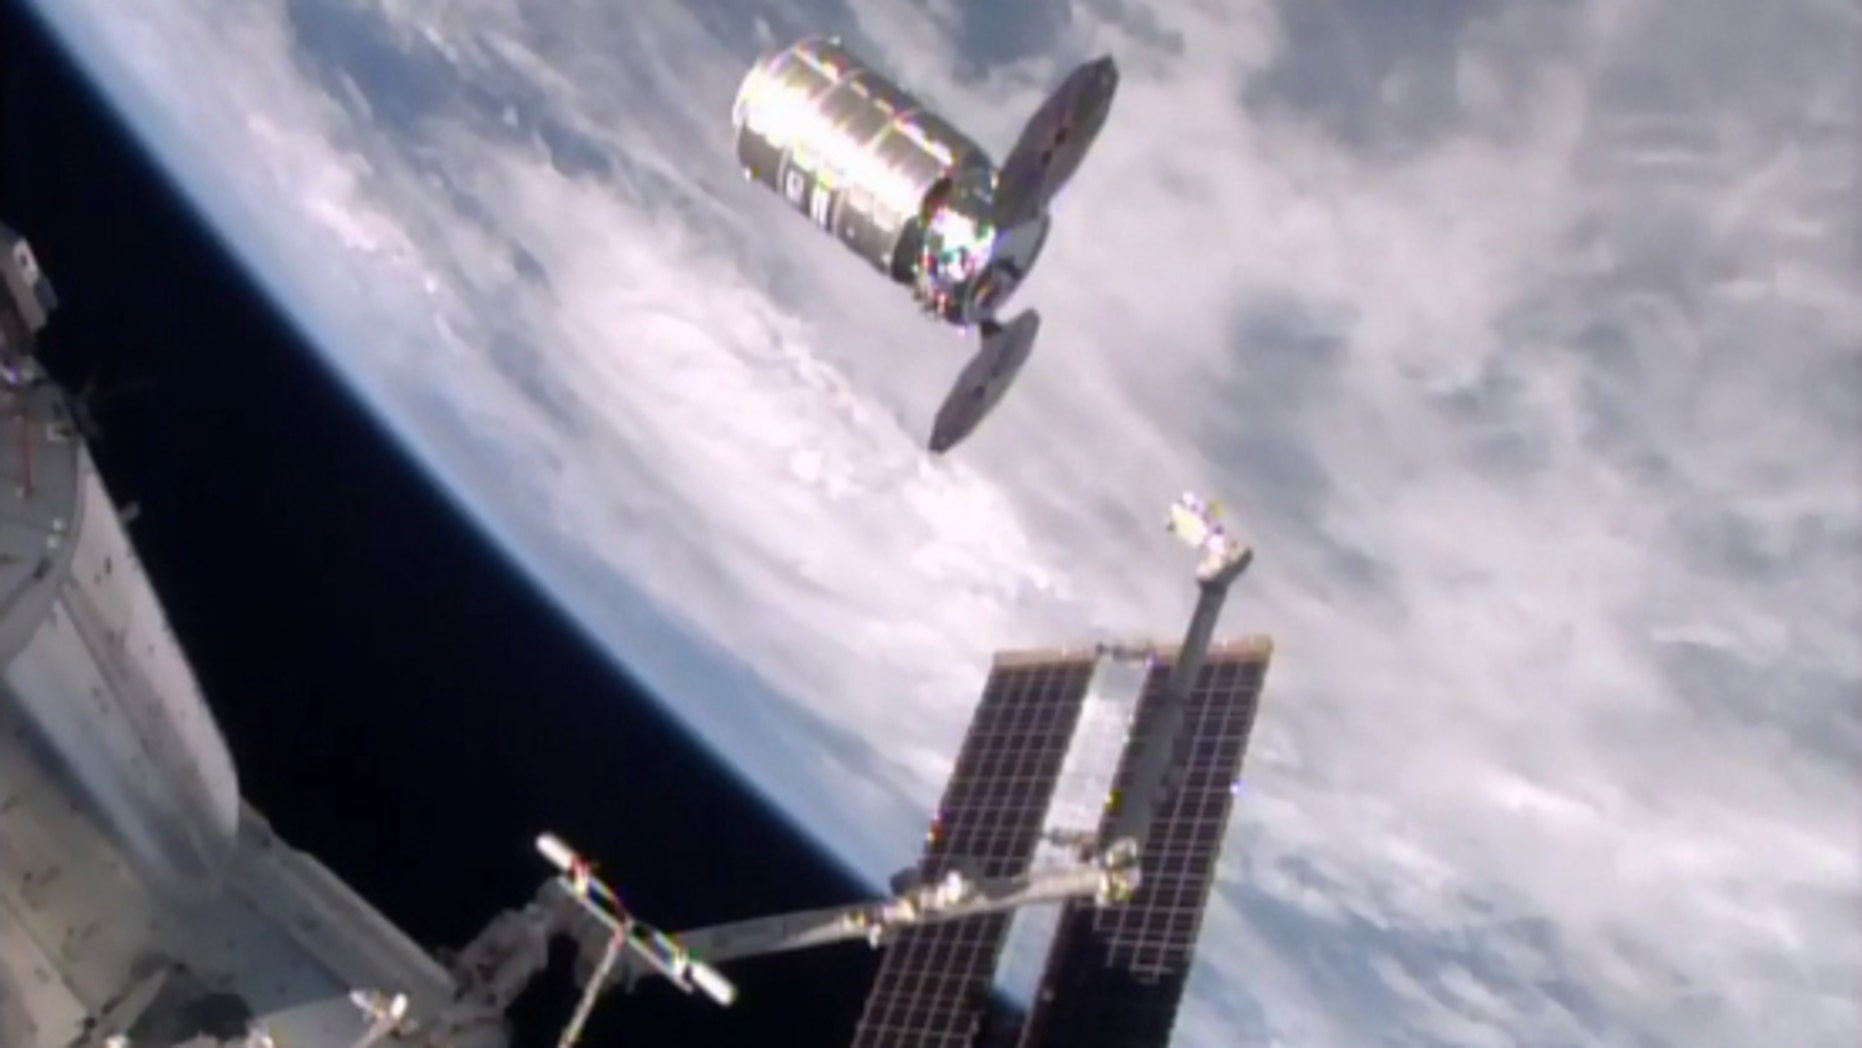 This photo taken from NASA TV shows a capsule loaded with 1.5 tons of trash, released from the International Space Station on Friday, Feb. 19, 2016.  NASA supplier Orbital ATK launched the capsule, named Cygnus, to the space station in December, full of food, clothes and other goods. Astronauts removed the precious contents, then filled it with garbage for incineration.  The spacecraft should re-enter the atmosphere and burn up harmlessly over the Pacific on Saturday.  (NASA via AP)